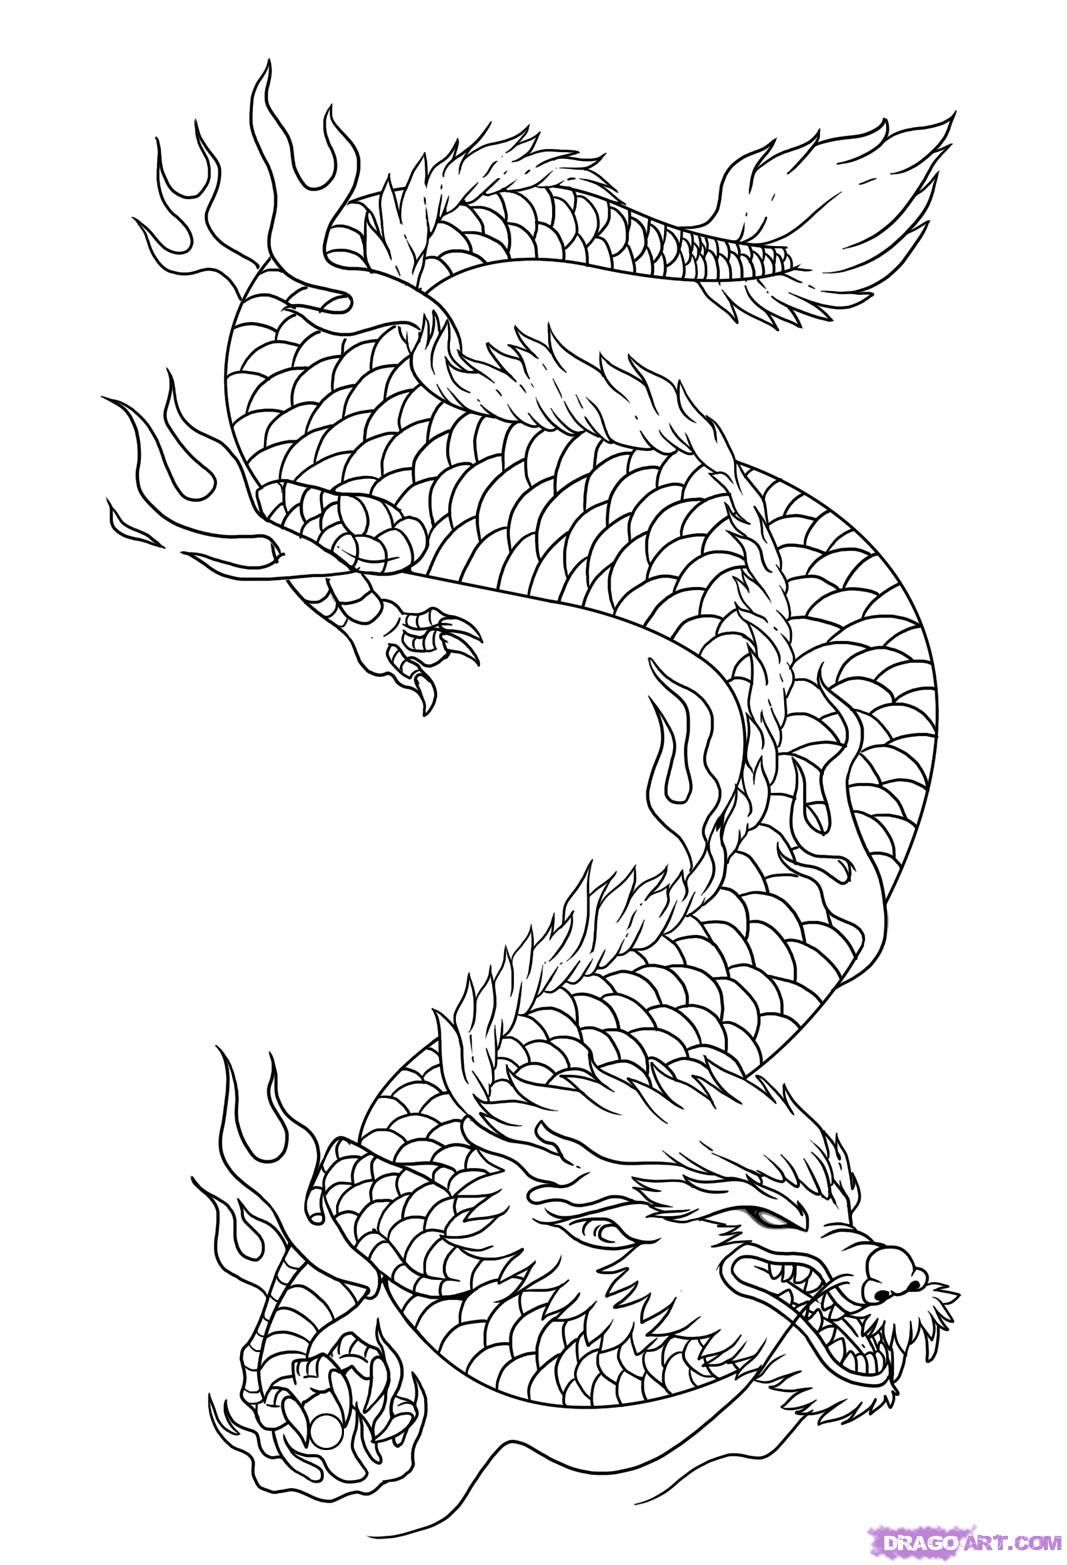 Kleurplaten Chinese Draak.Dragon Drawings How To Draw Dragon Art Step 9